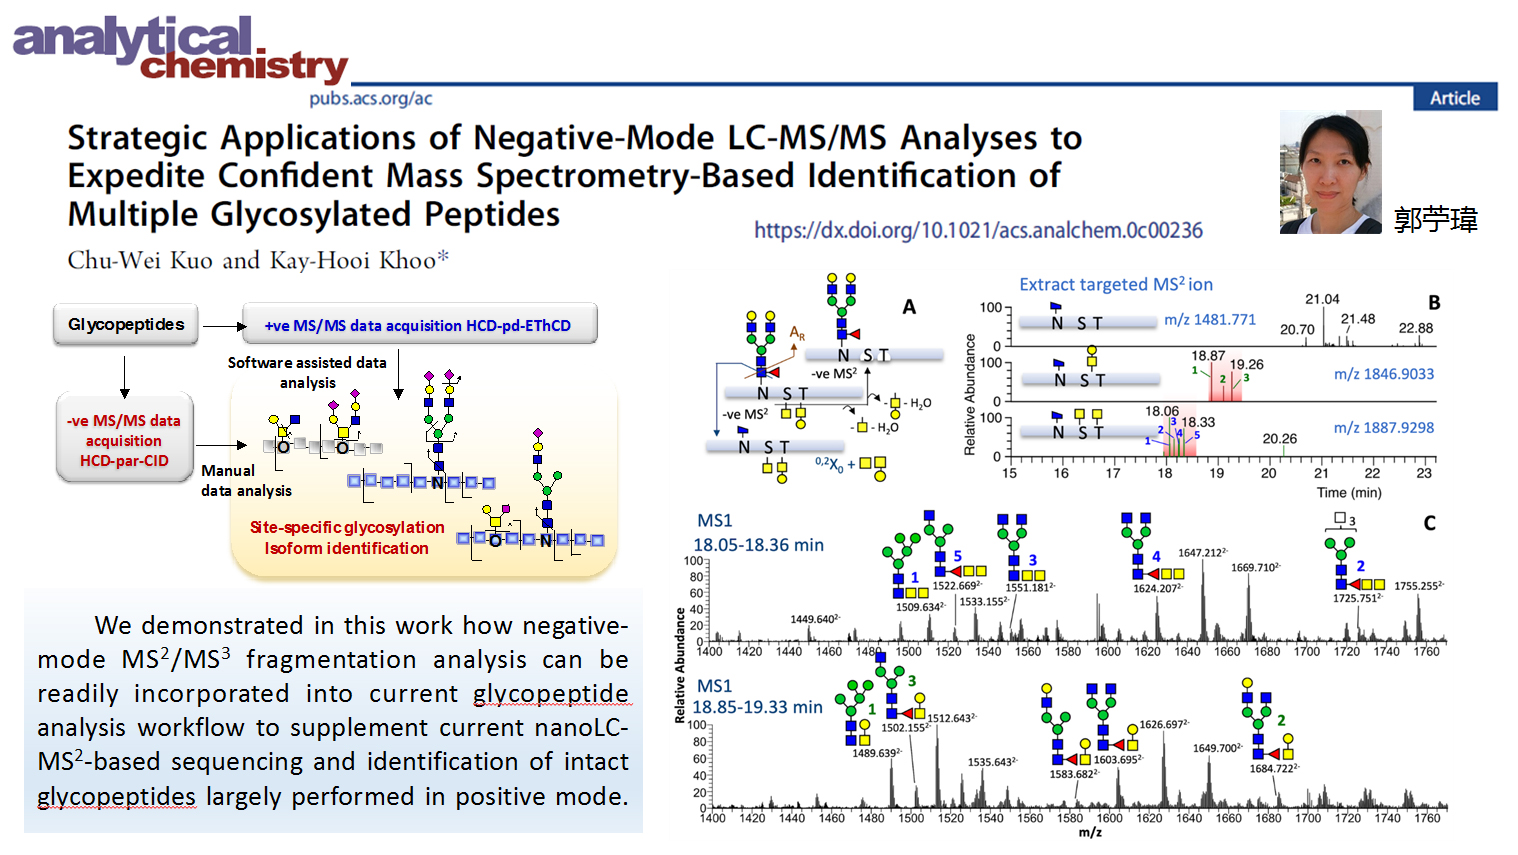 Strategic applications of negative mode LC-MS/MS analyses to expedite confident mass spectrometry-based identification of multiple glycosylated peptides